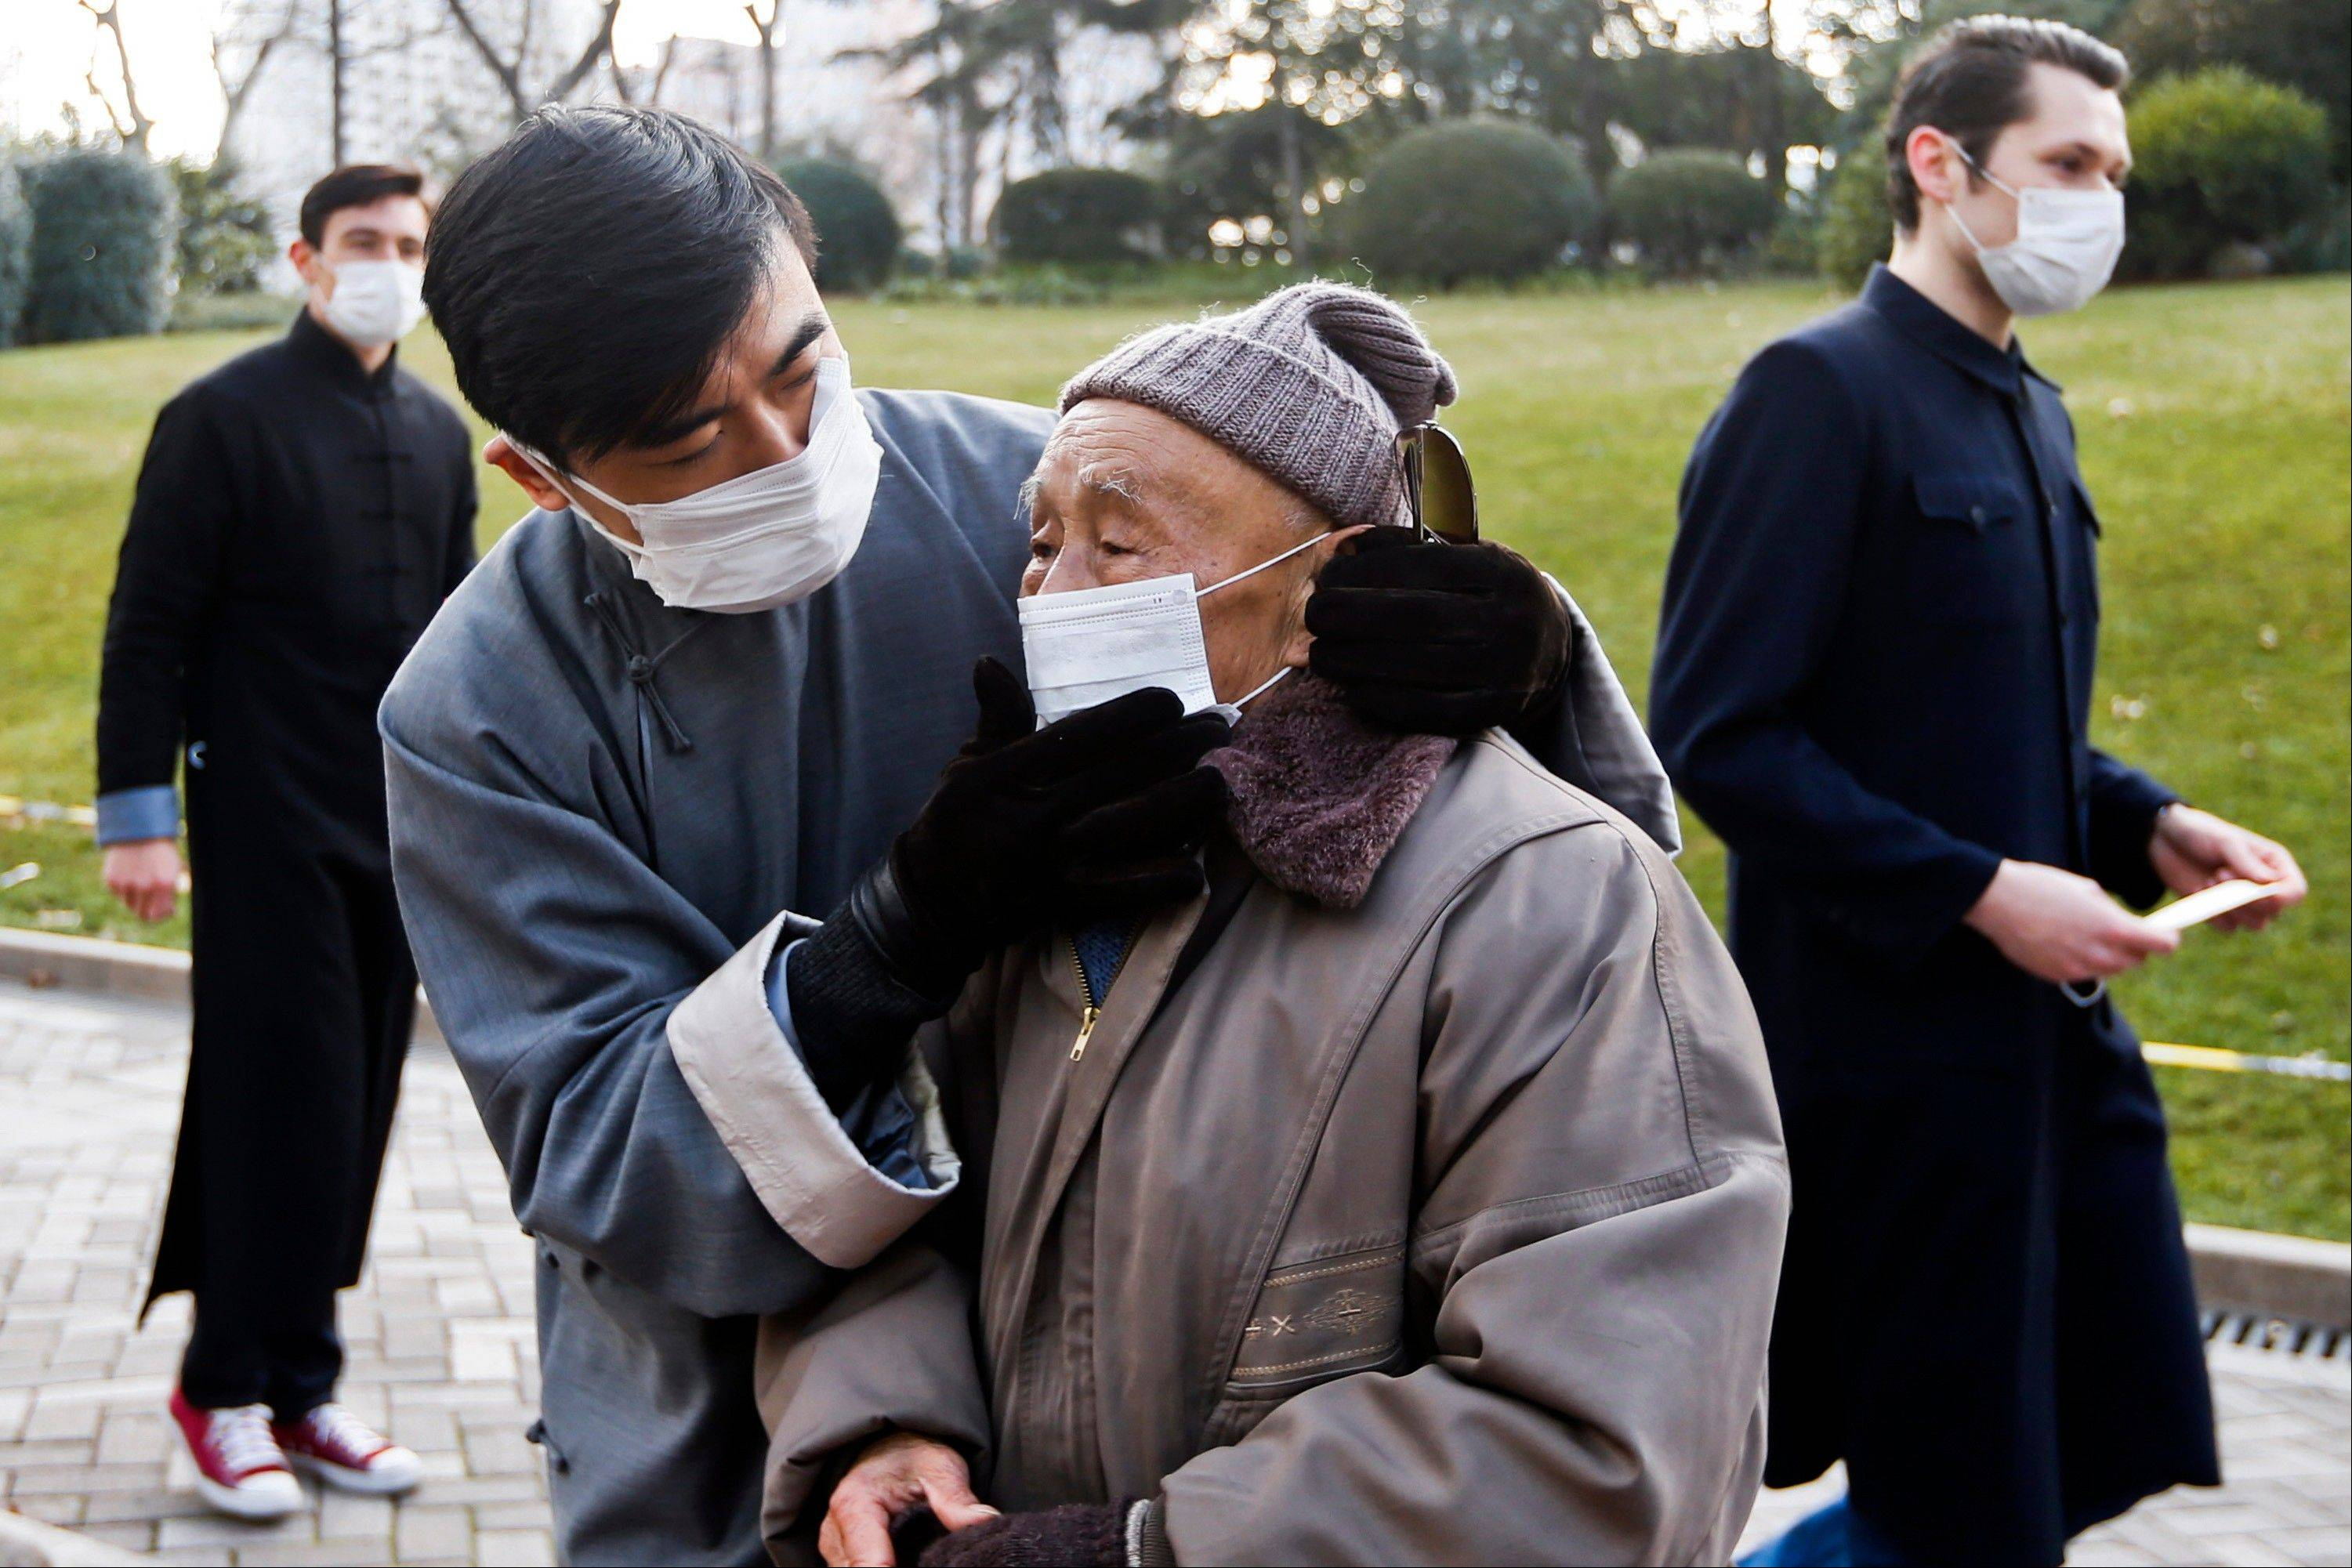 A man helps put on a mask for an elderly passer-by while several foreigners hand out free masks to pedestrians without masks in an effort to promote public awareness to use masks for protection from polluted air in downtown Shanghai. Air pollution is a major problem in China.